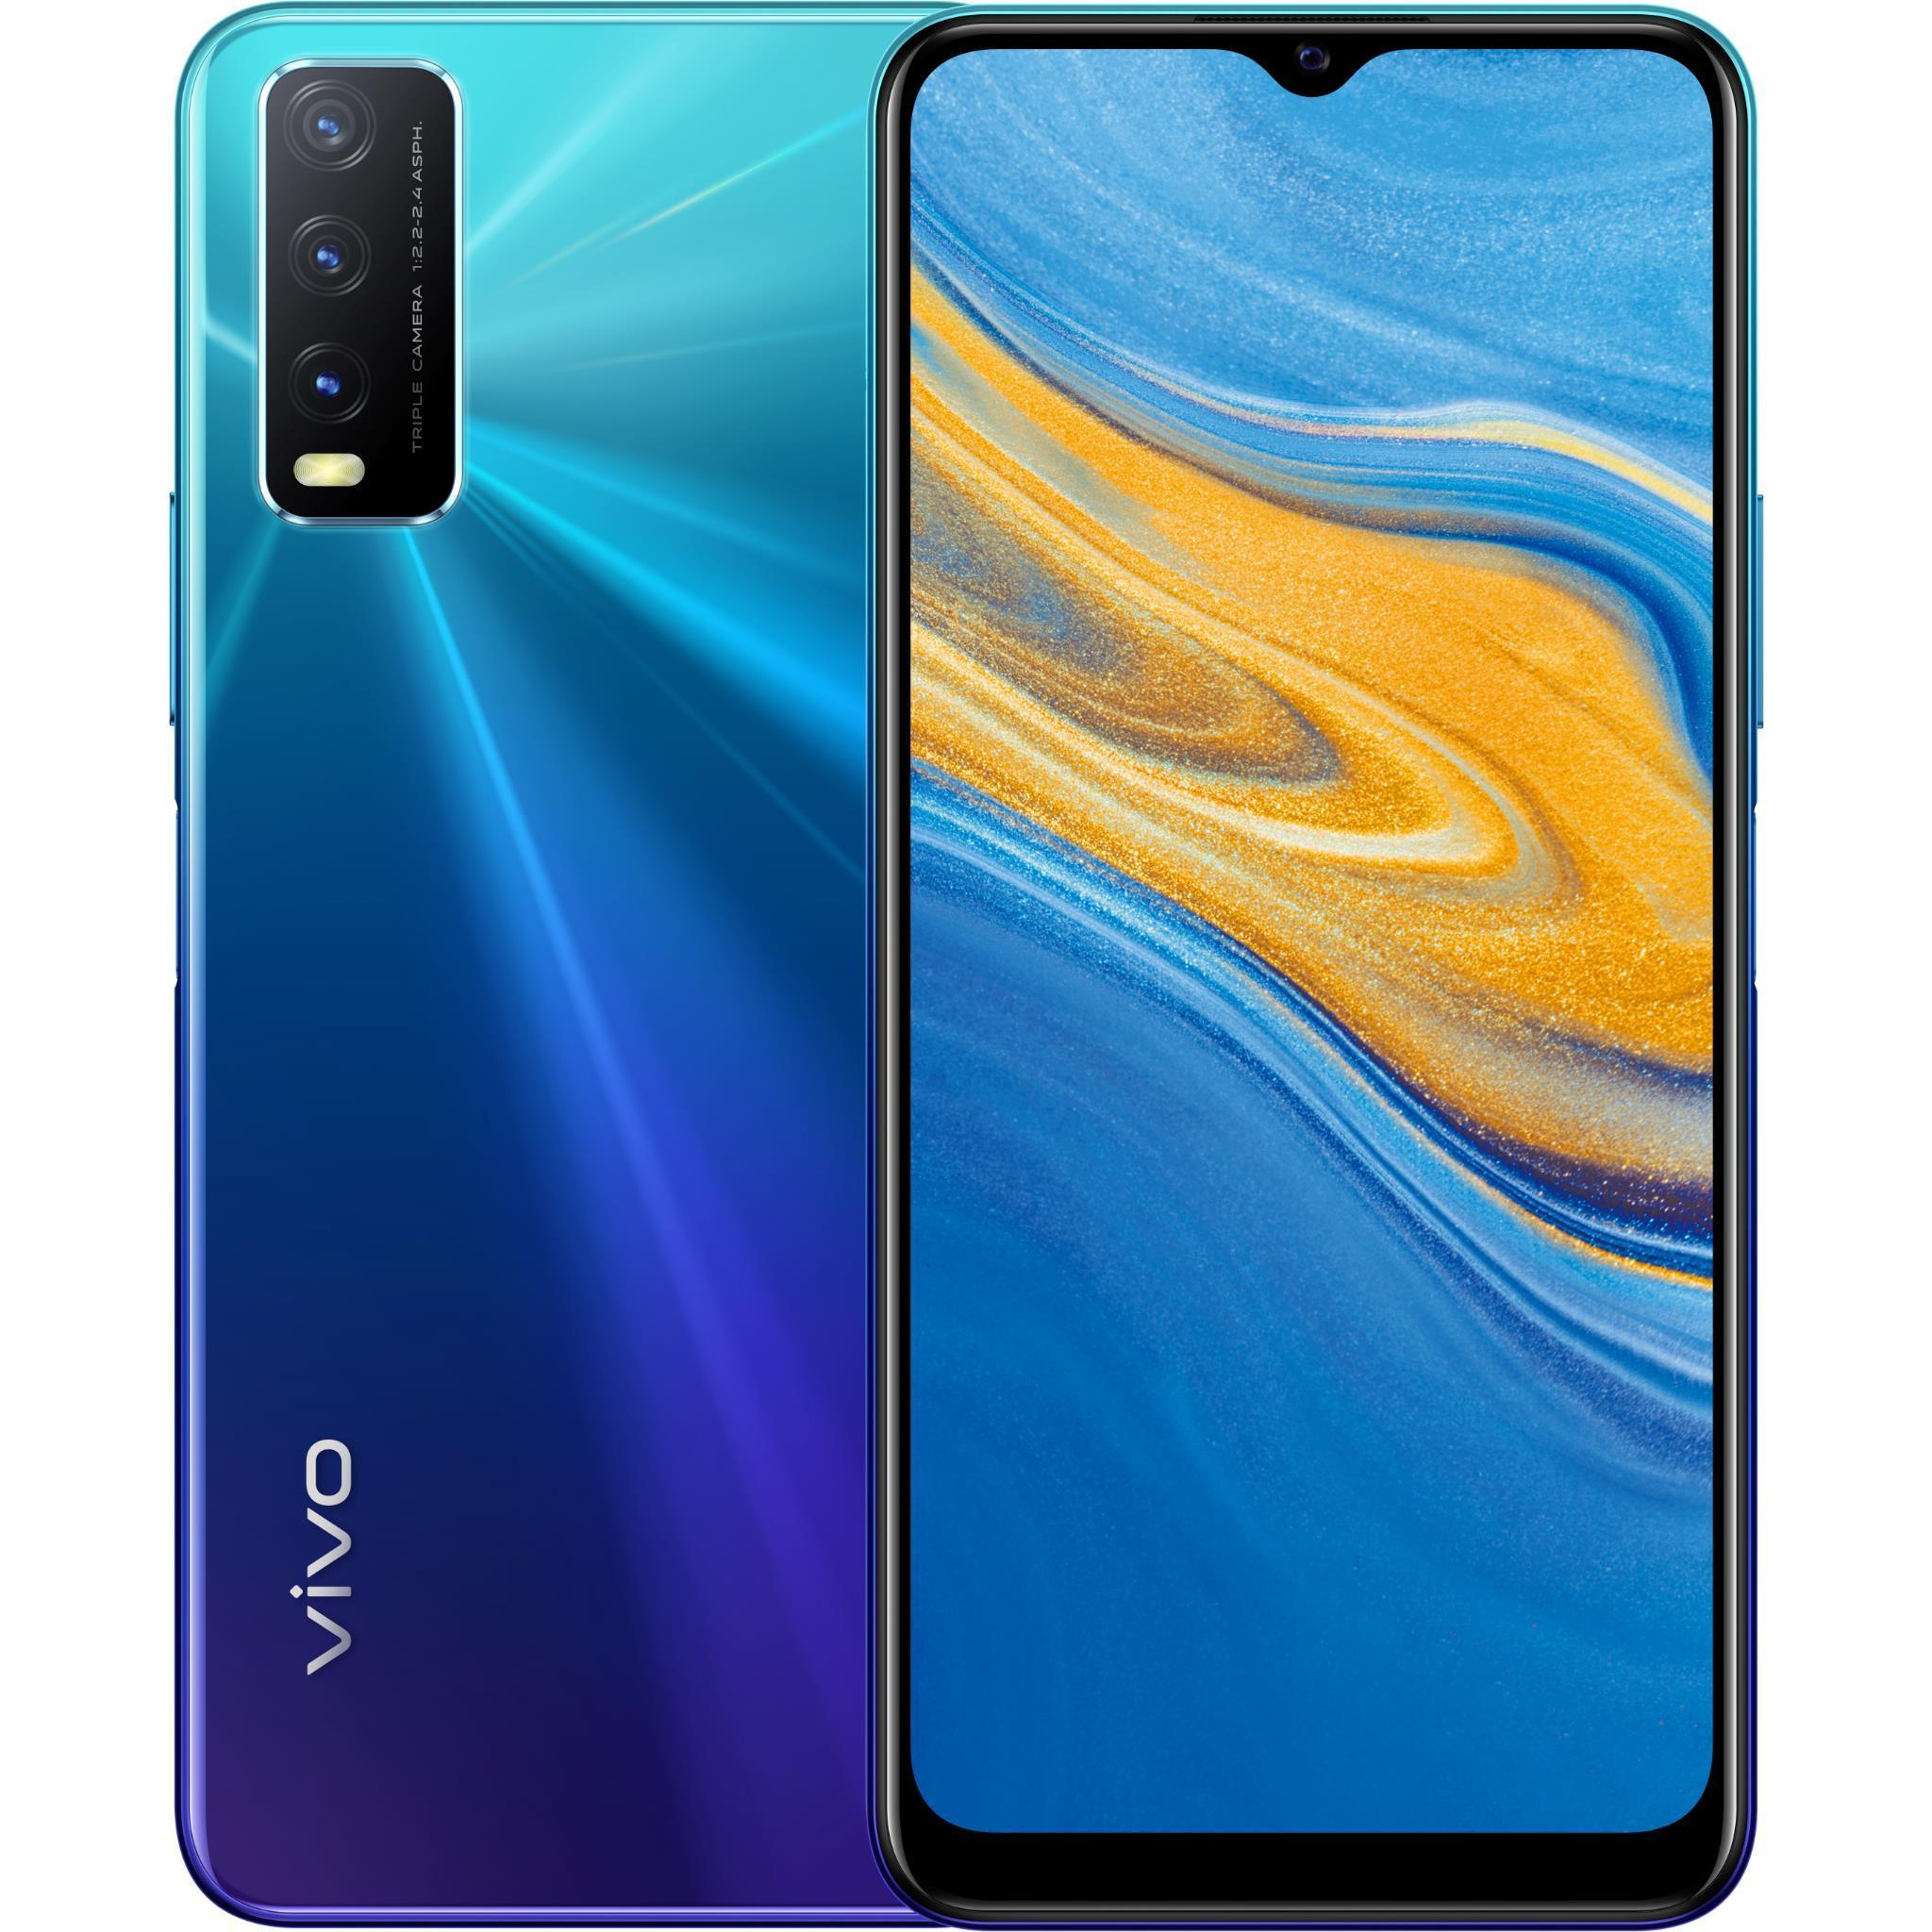 Vivo Y20s 128GB (Nebula Blue)